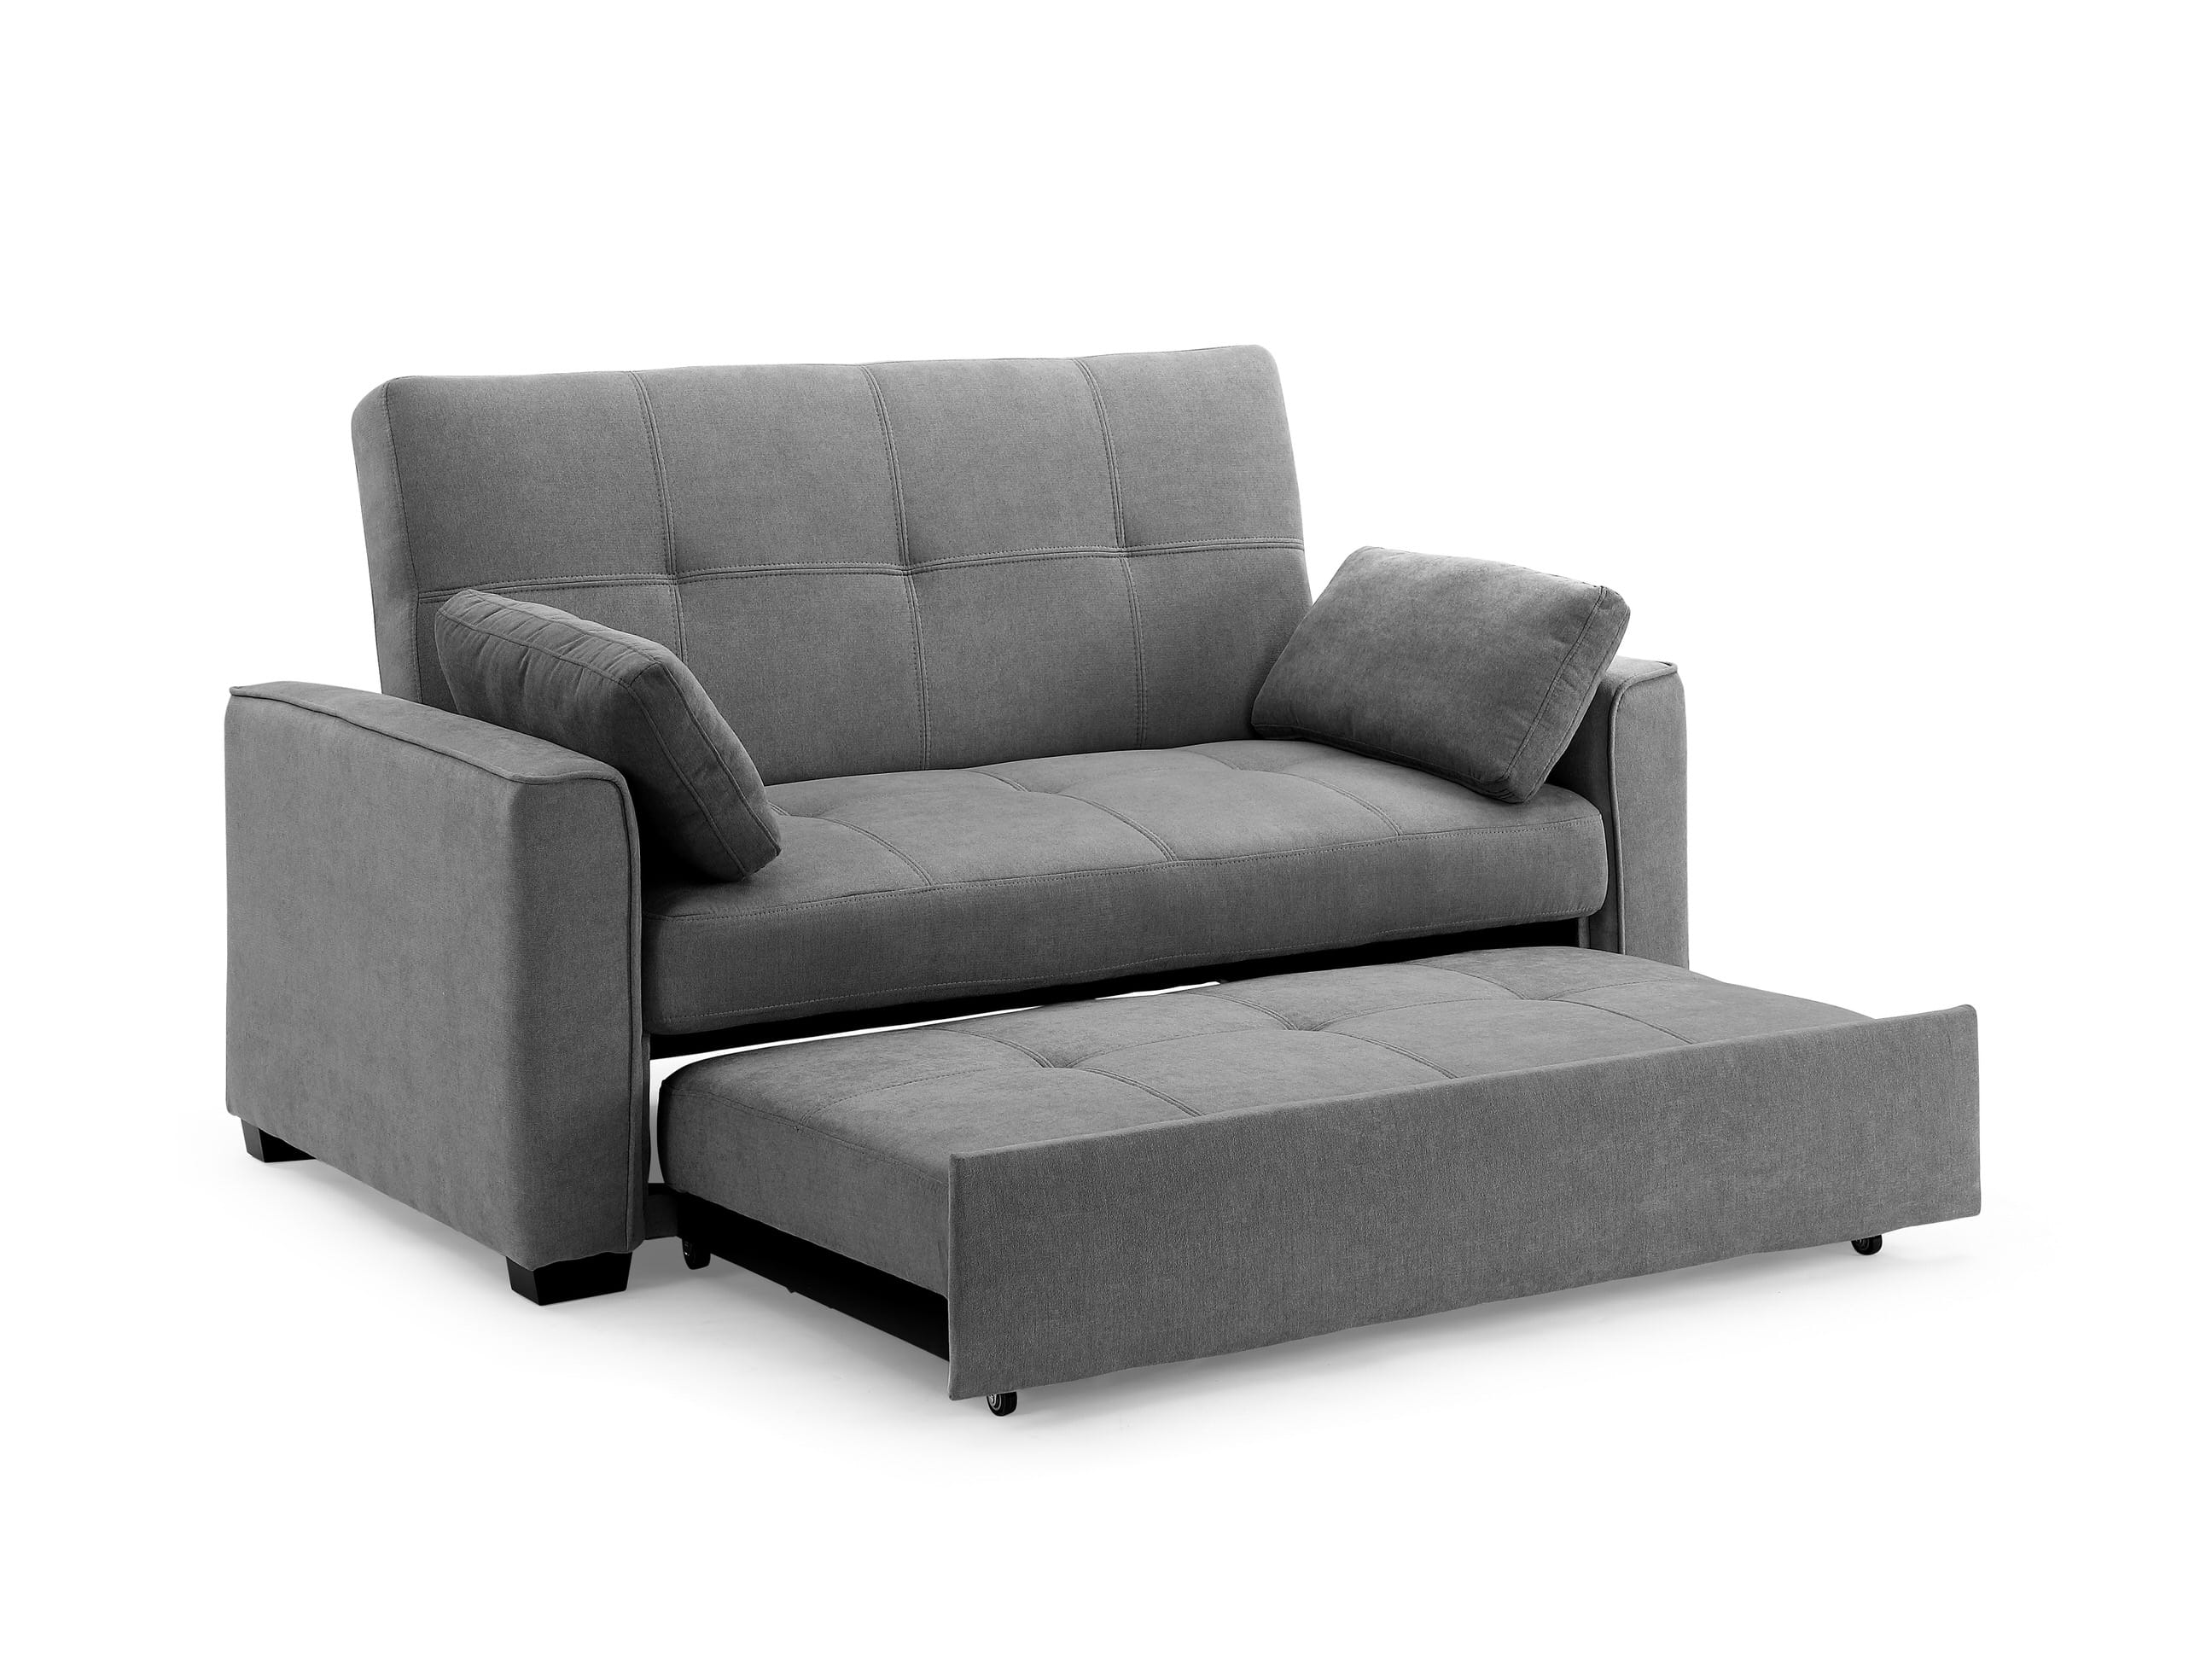 - Nantucket Loveseat Full Size Sleeper Java By Night & Day Furniture